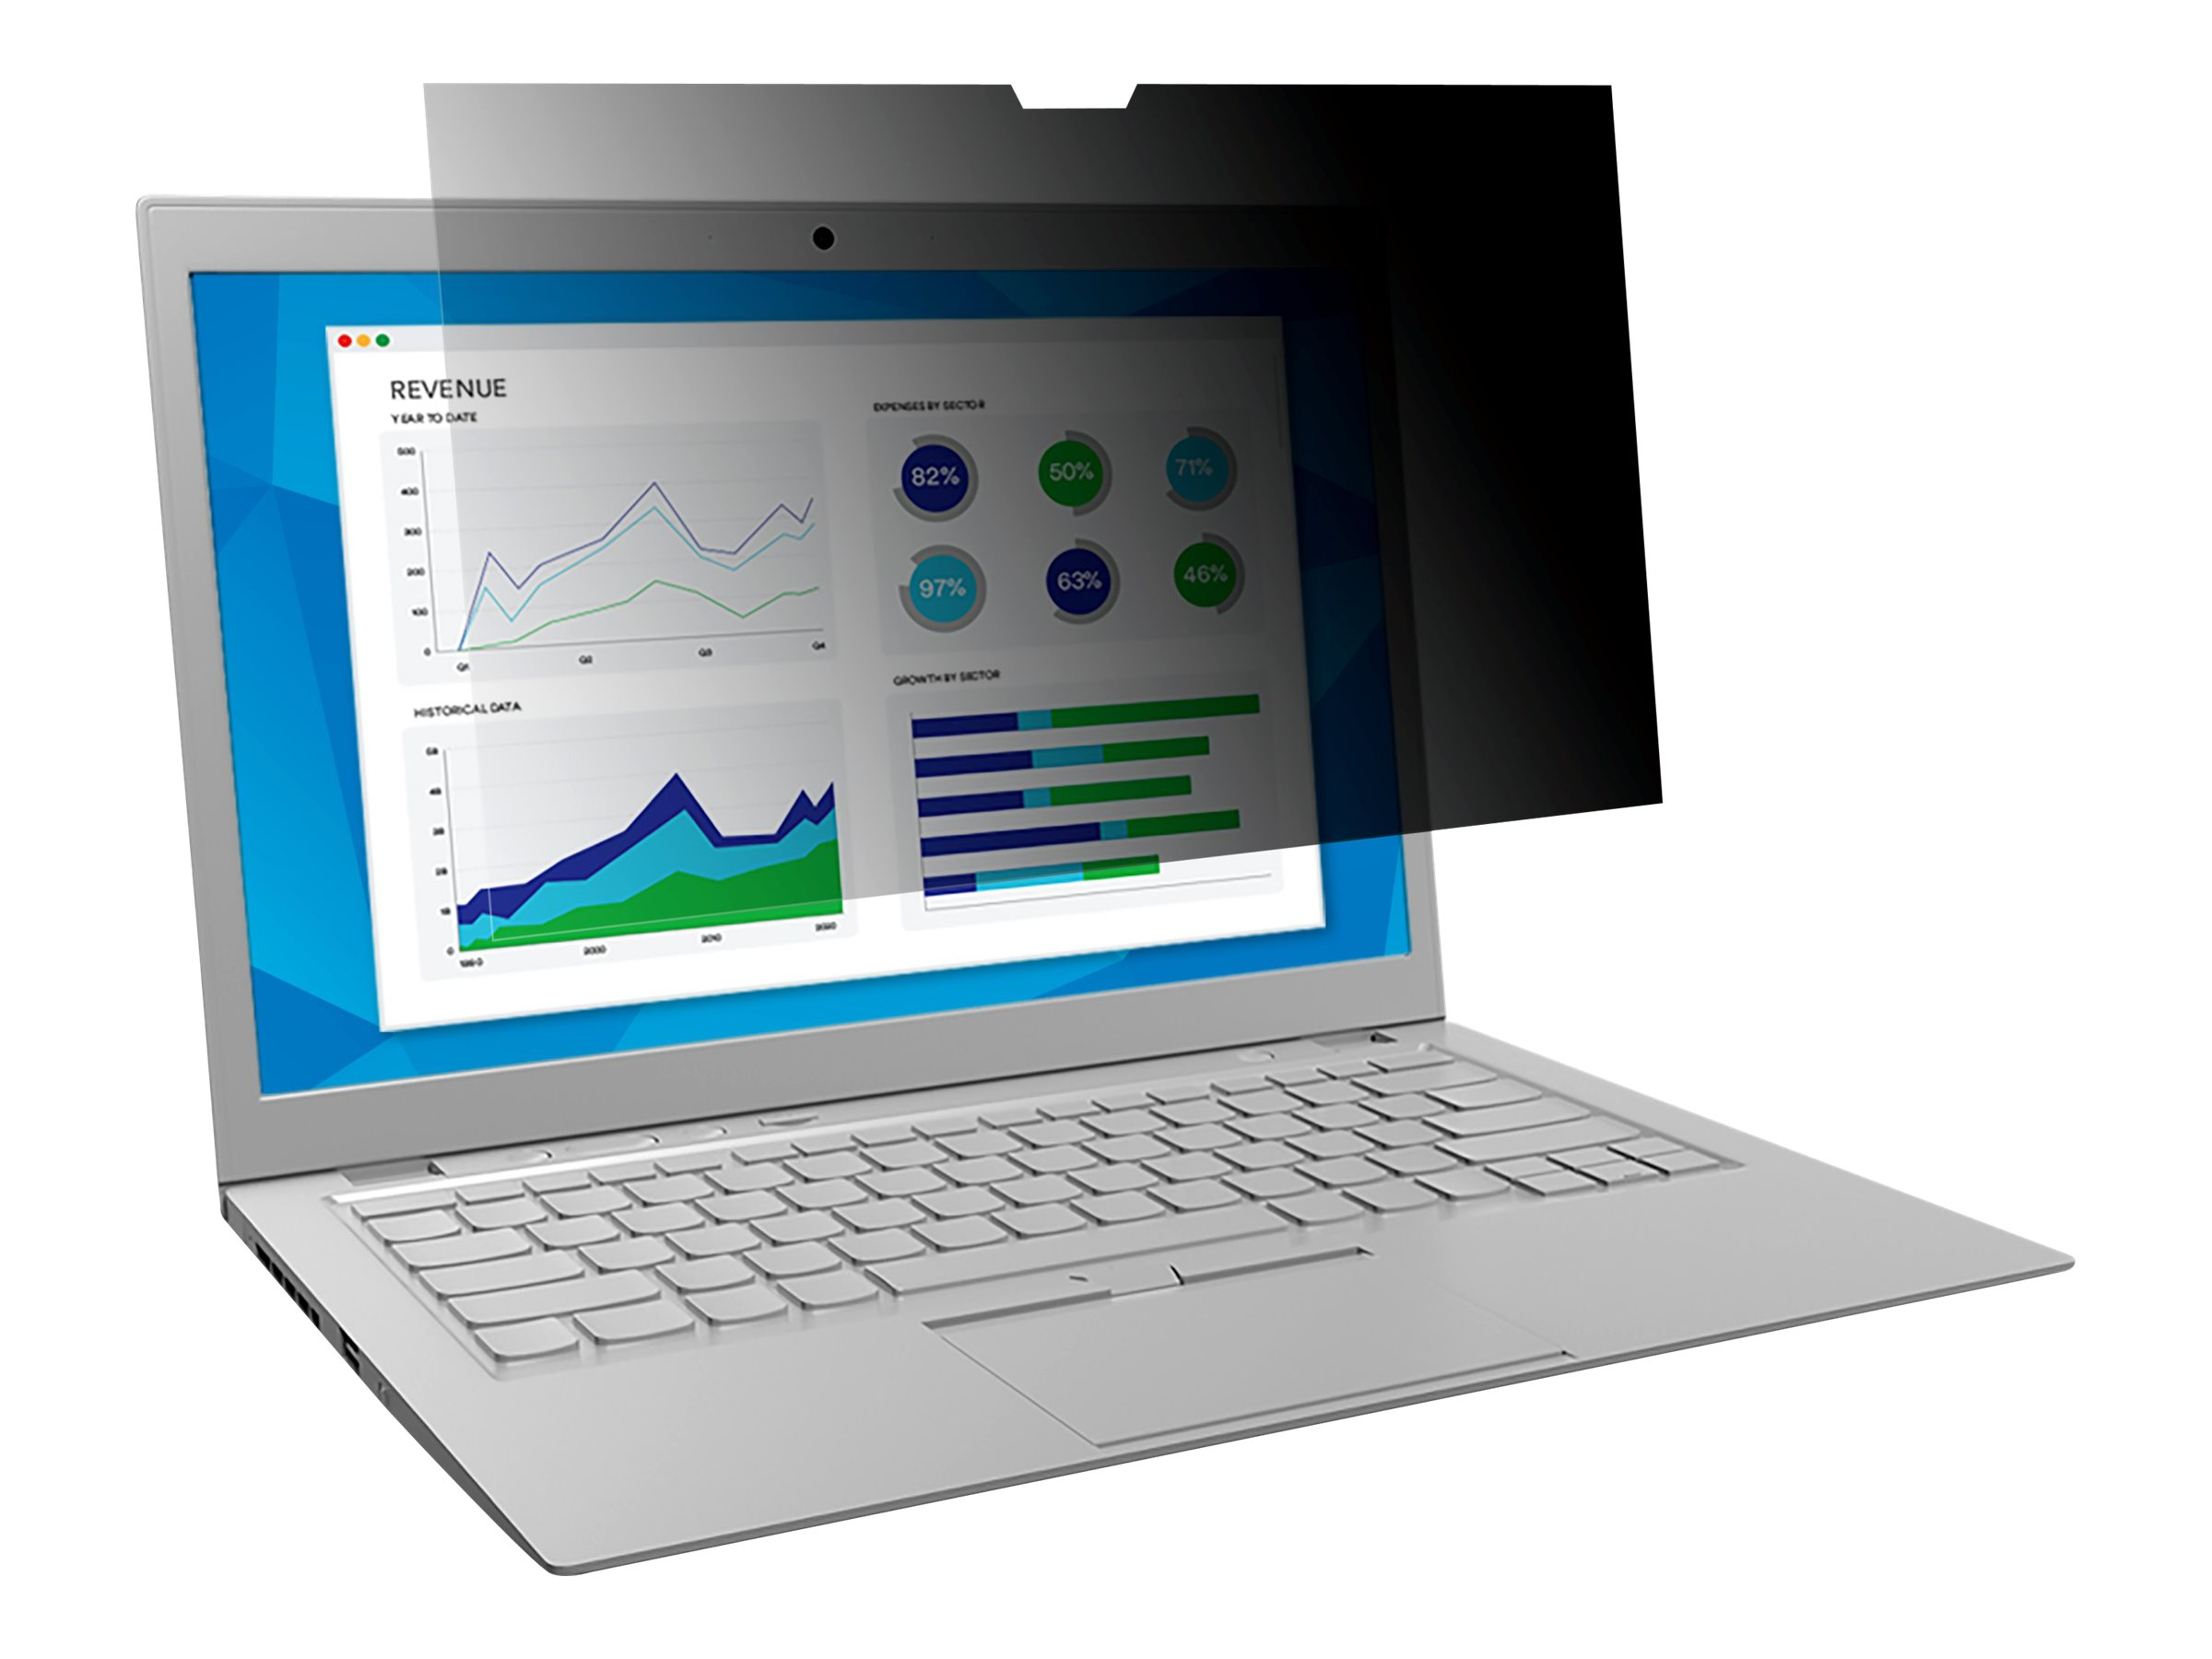 """3M Touch Privacy Filter for 13.3"""" Laptops 16:9 with COMPLY notebook privacy filter"""